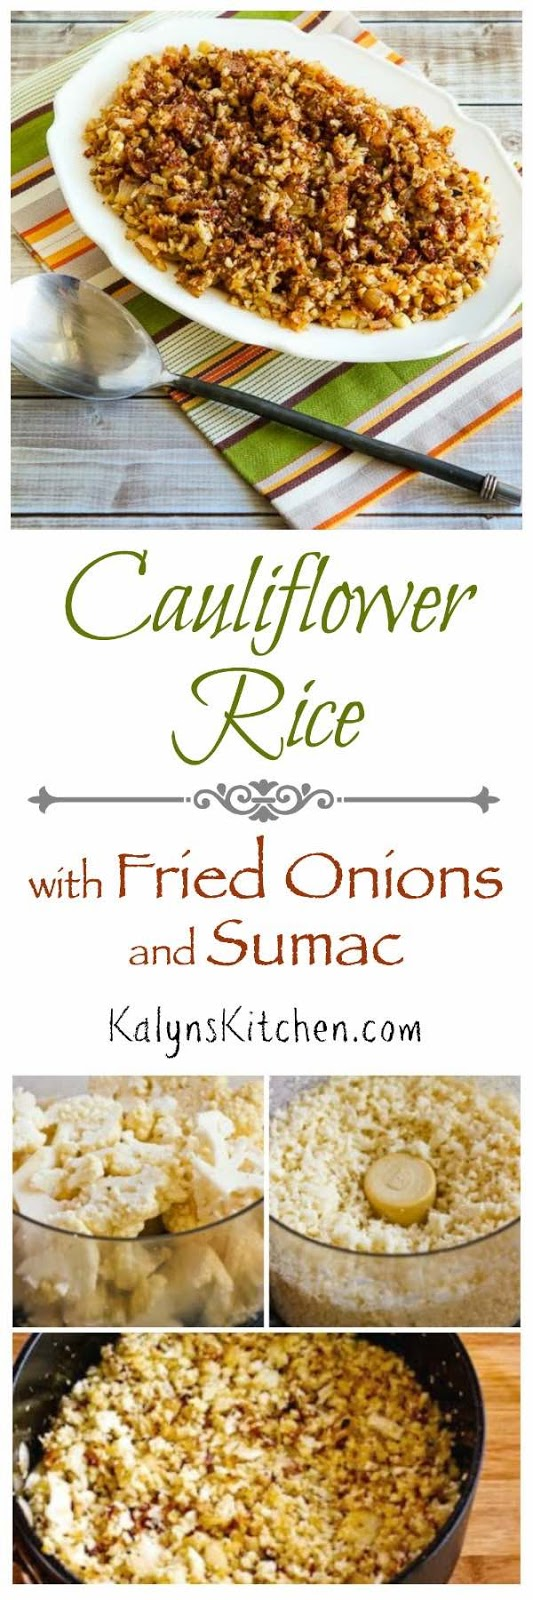 Low-Carb Cauliflower Rice with Fried Onions and Sumac - Kalyn\'s Kitchen